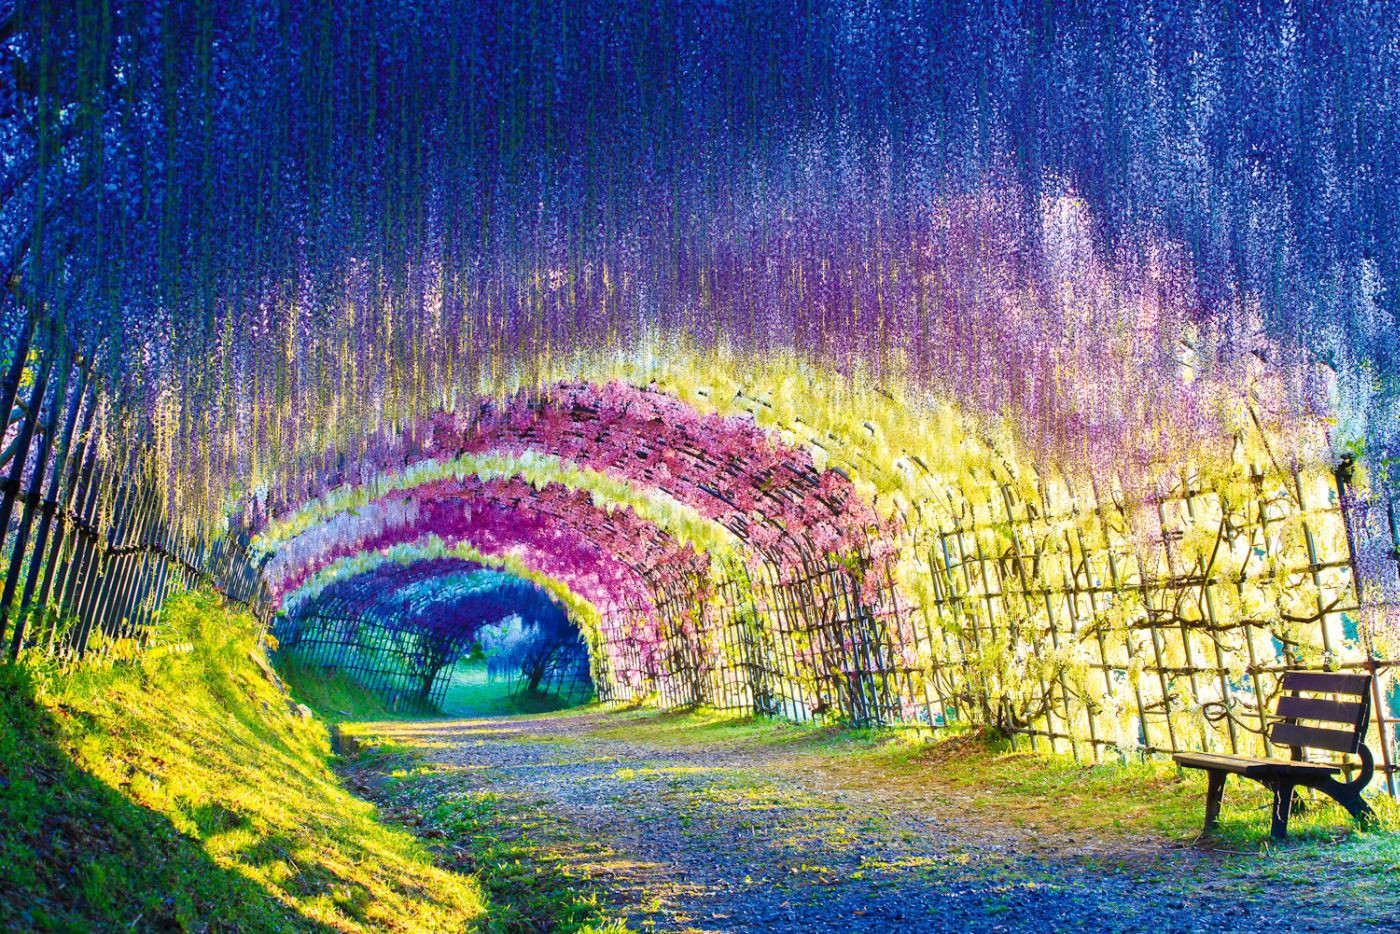 Japan S Wisteria Flower Tunnel Is Like Walking Through A Rainbow